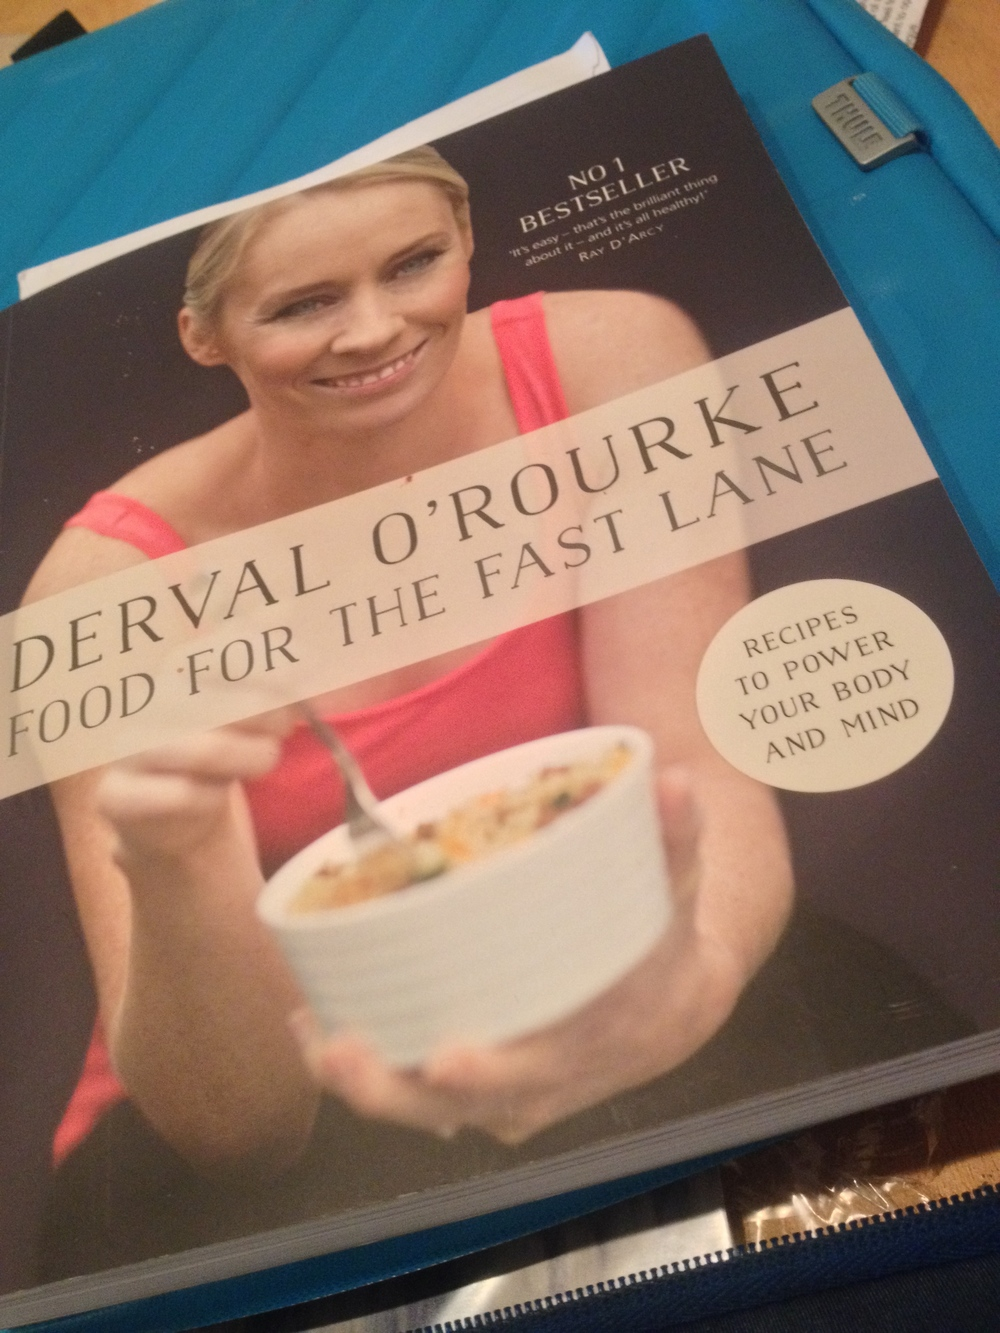 A goal for myself this year was to improve the quality of my food/eating.  Derval O'Rourke's new book  is excellent......